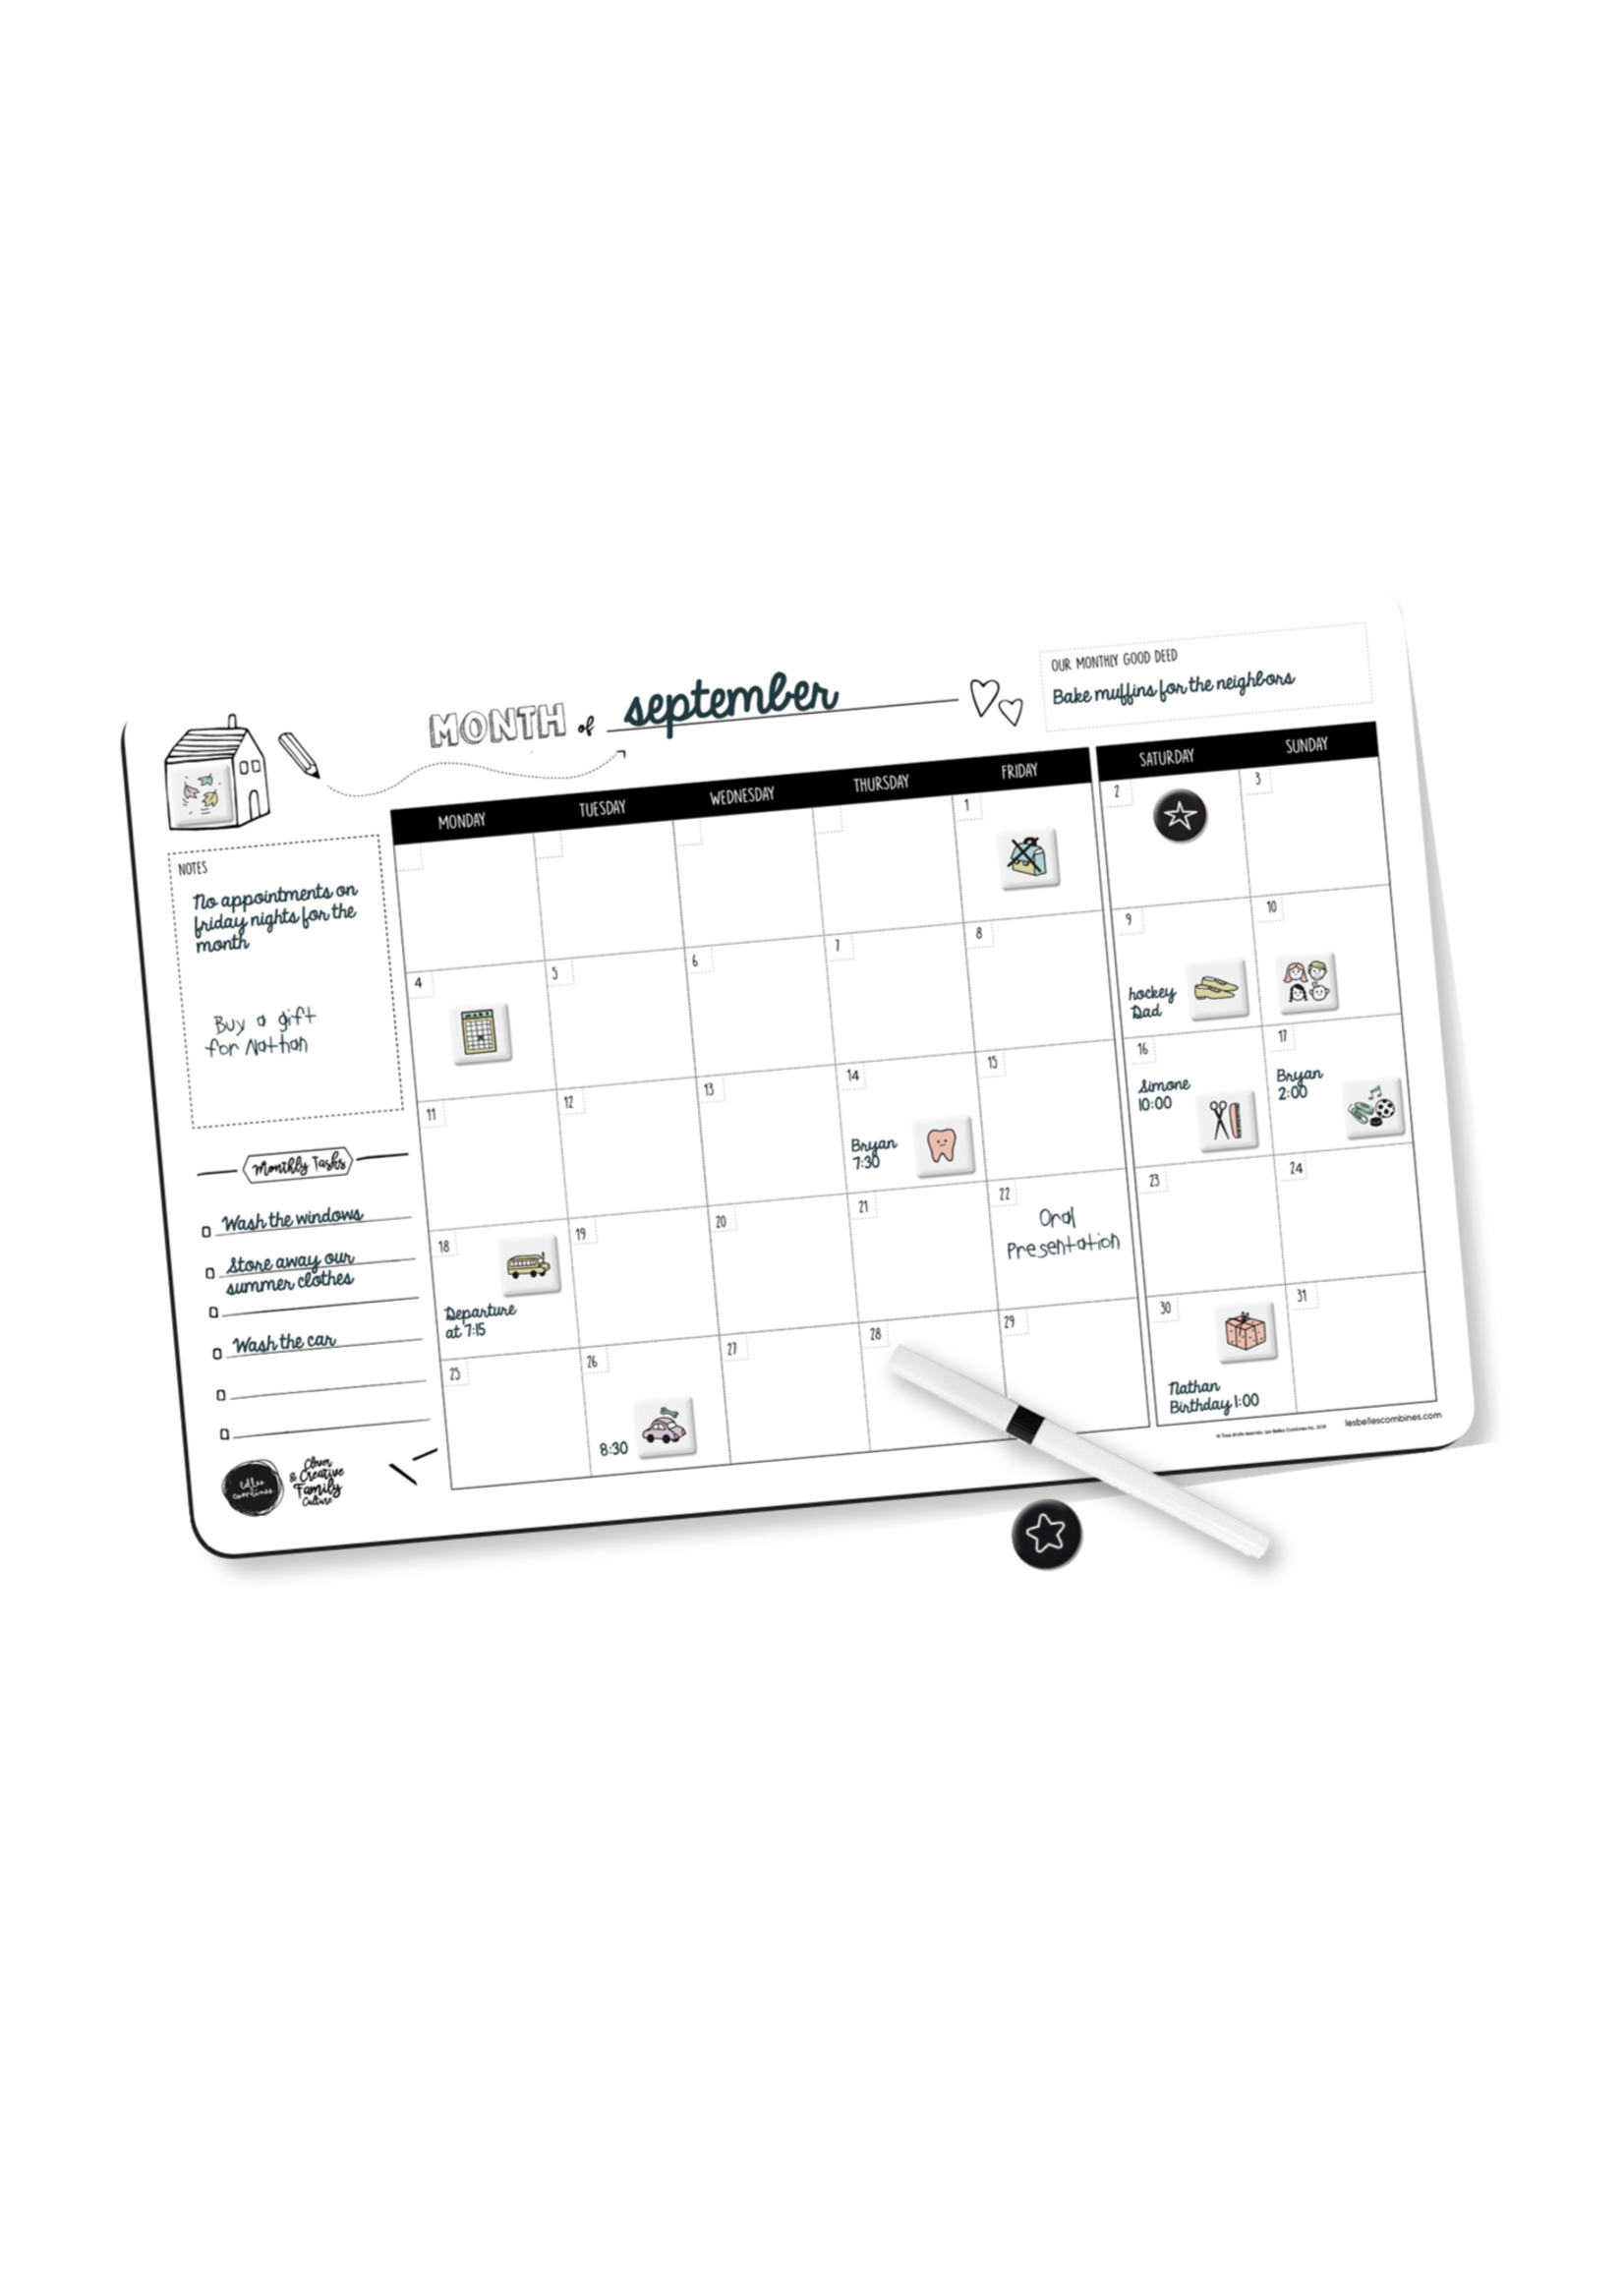 Les belles combines Monthly family planner